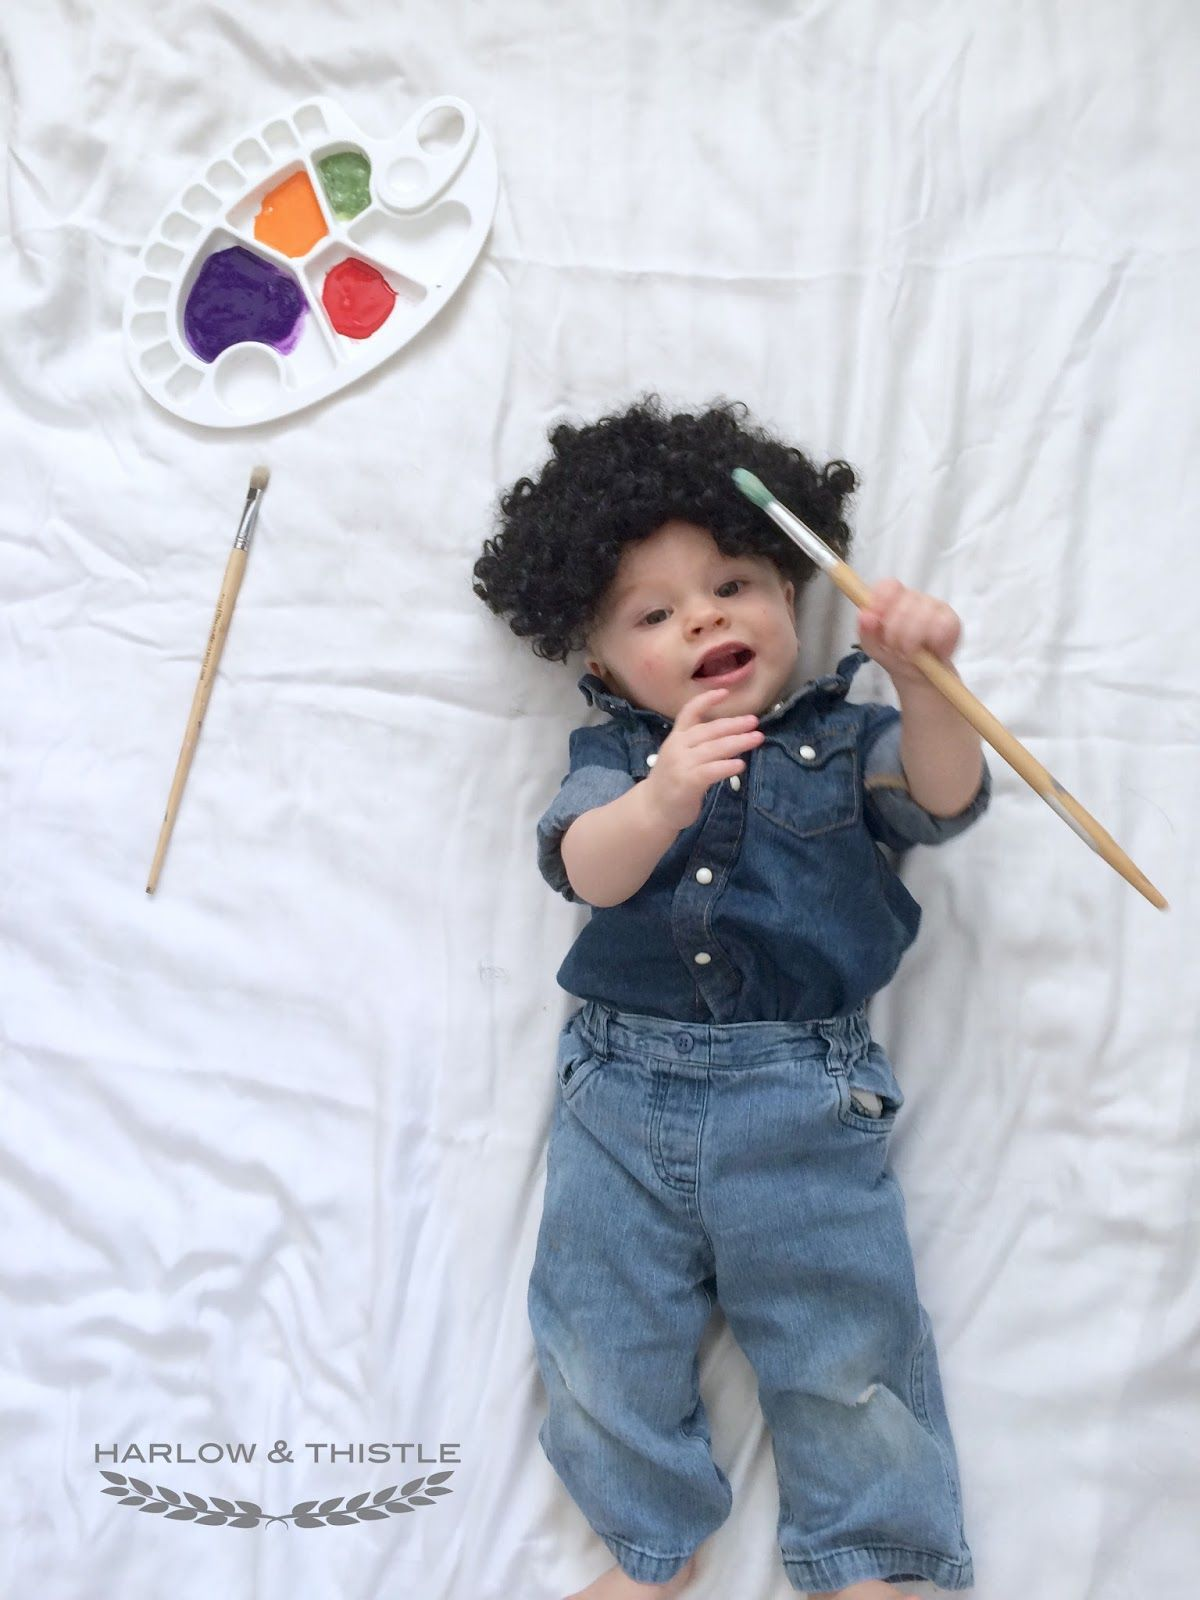 Harlow u0026 Thistle DIY Baby Halloween Costumes for 2015 ; Bob Ross  sc 1 st  Pinterest & Harlow u0026 Thistle: DIY Baby Halloween Costumes for 2015 ; Bob Ross ...